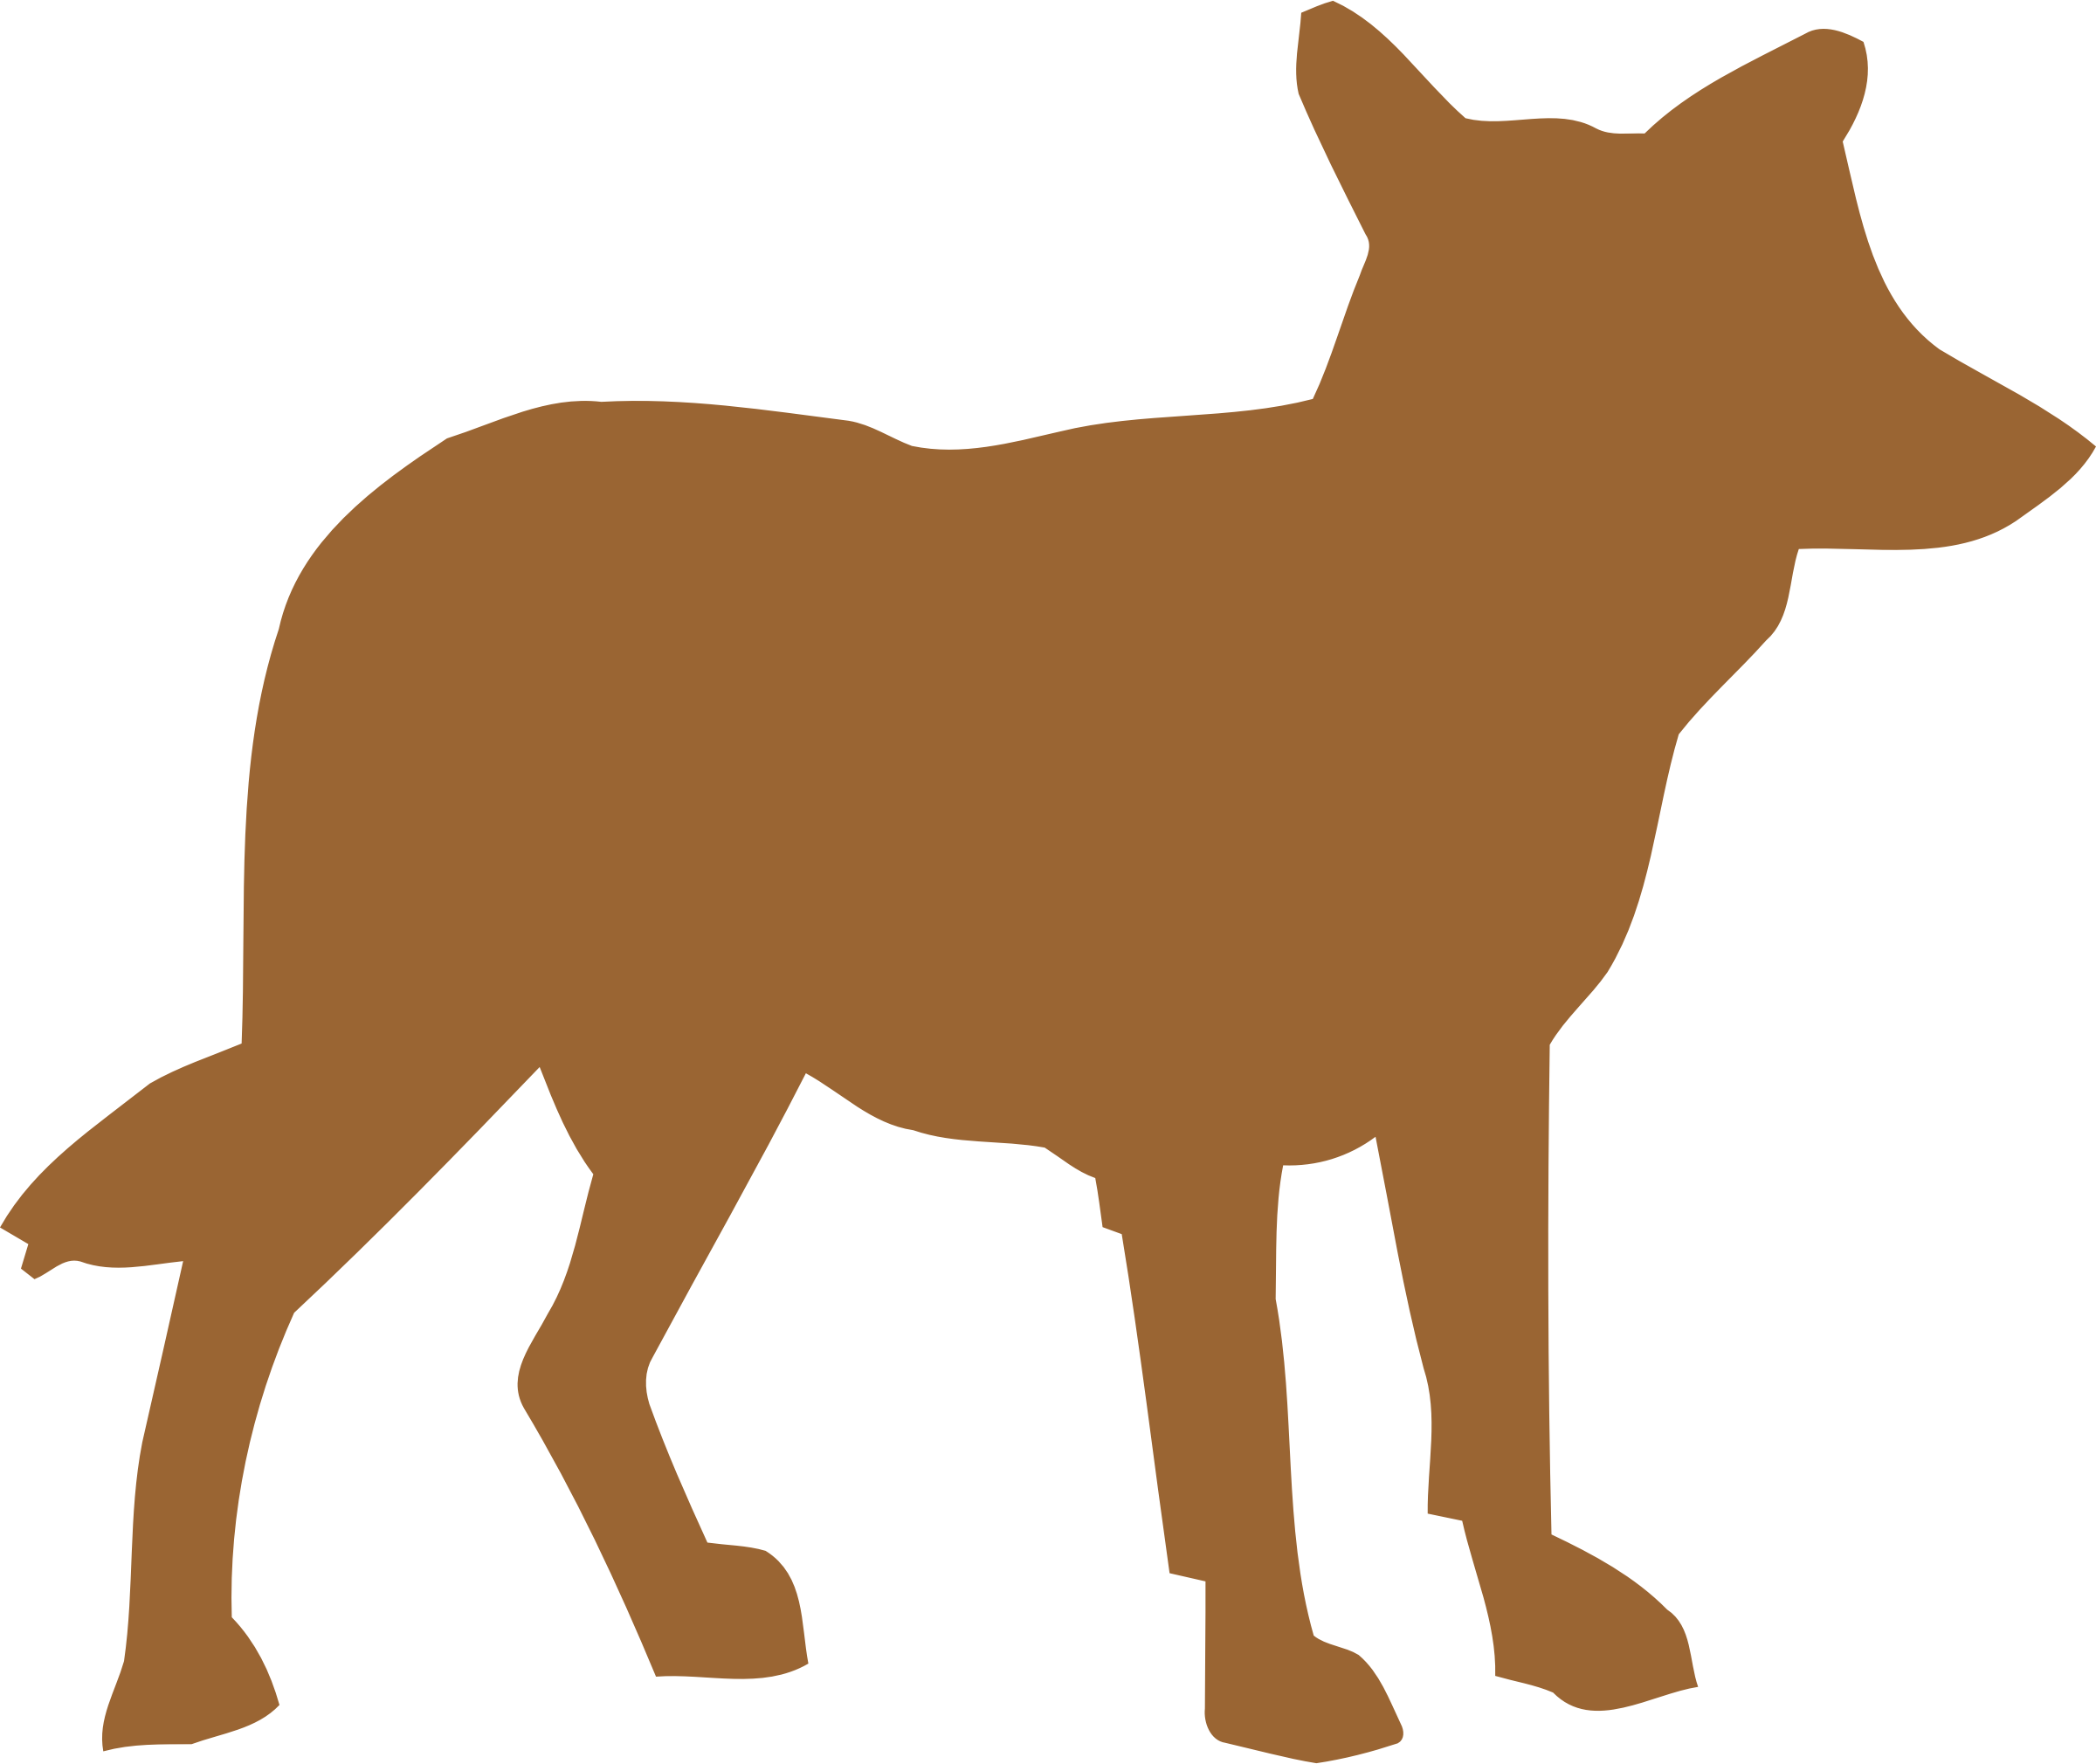 Coyote clipart svg. Vectorized big image png